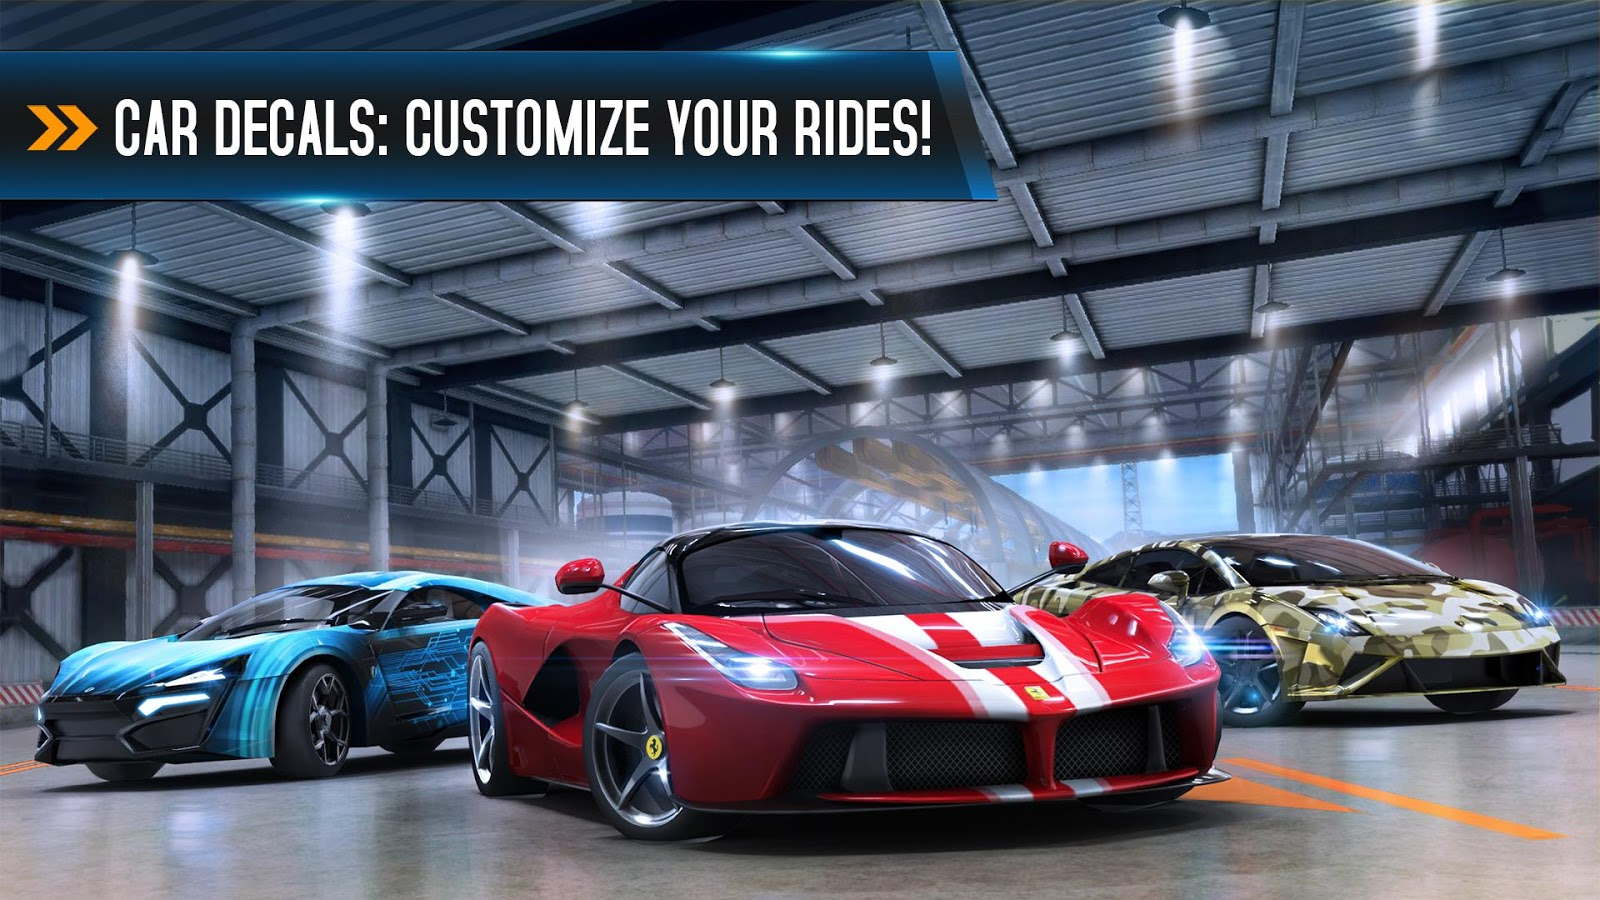 download asphalt 8 airbone mod apk andropalace.com